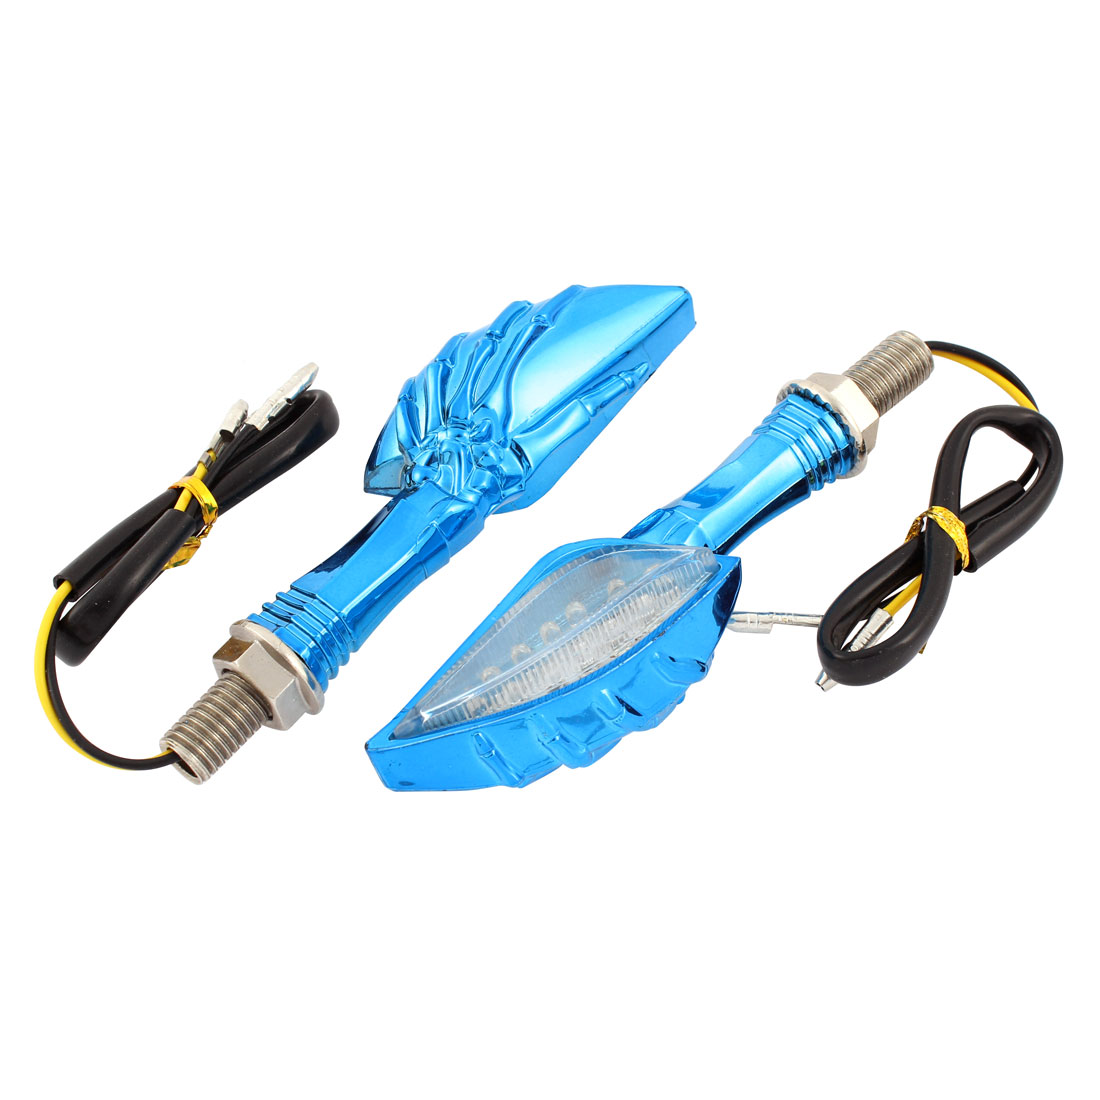 2 Pcs Blue Hook Shaped Yellow LED Turn Signal Lights for Motorcycle